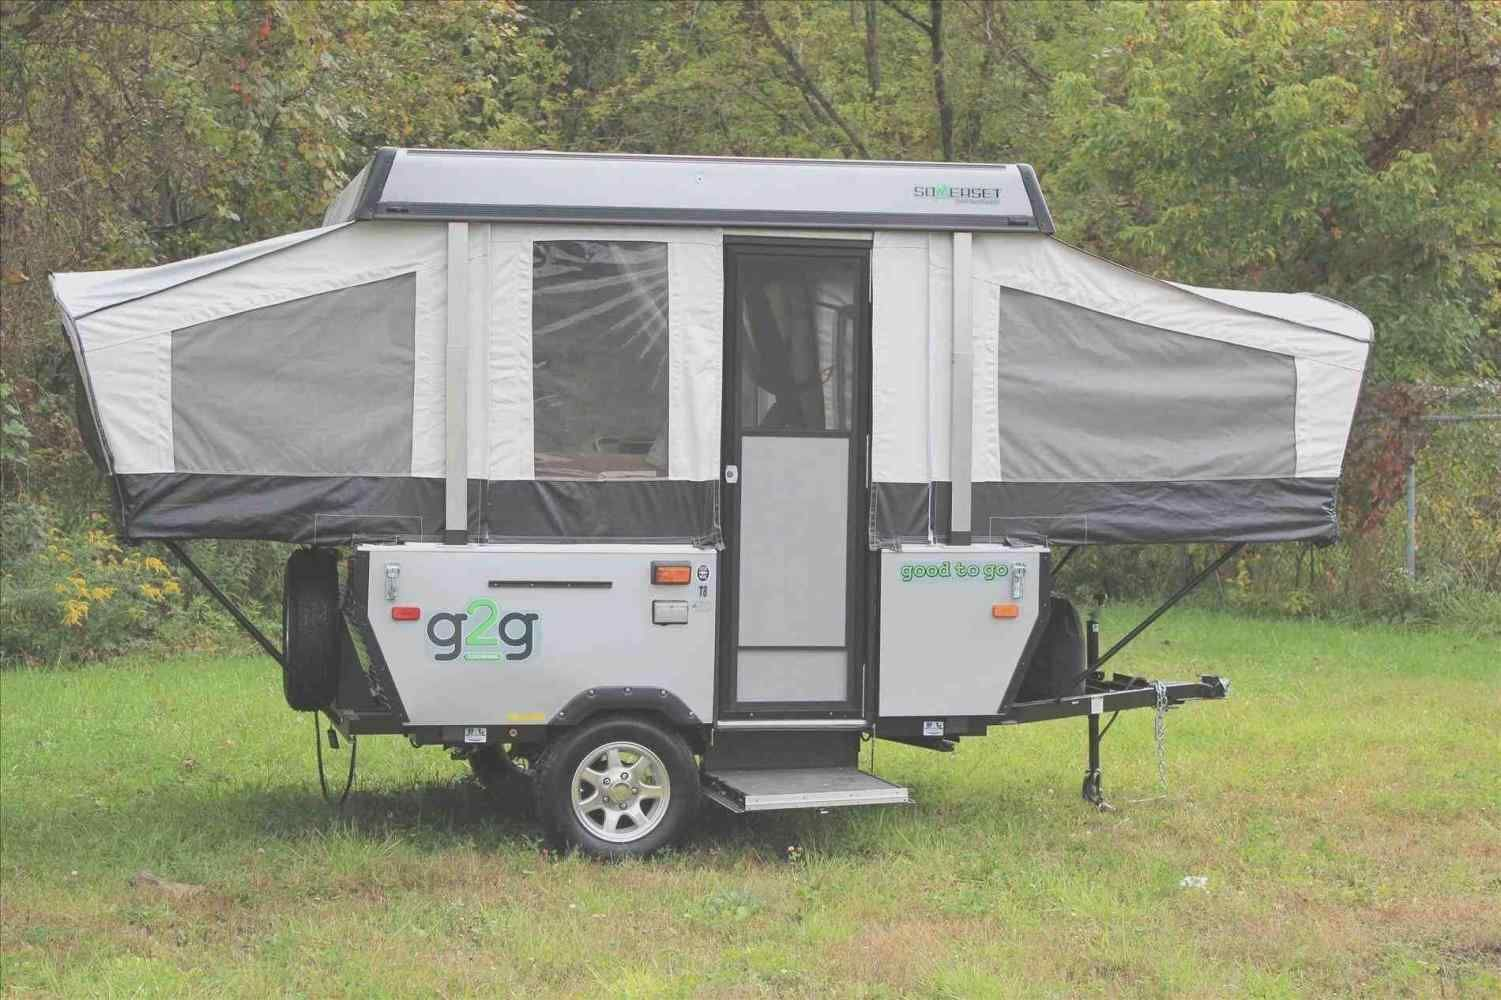 25 Awesome Small Pop Up Camper Trailer Ideas For Comfortable